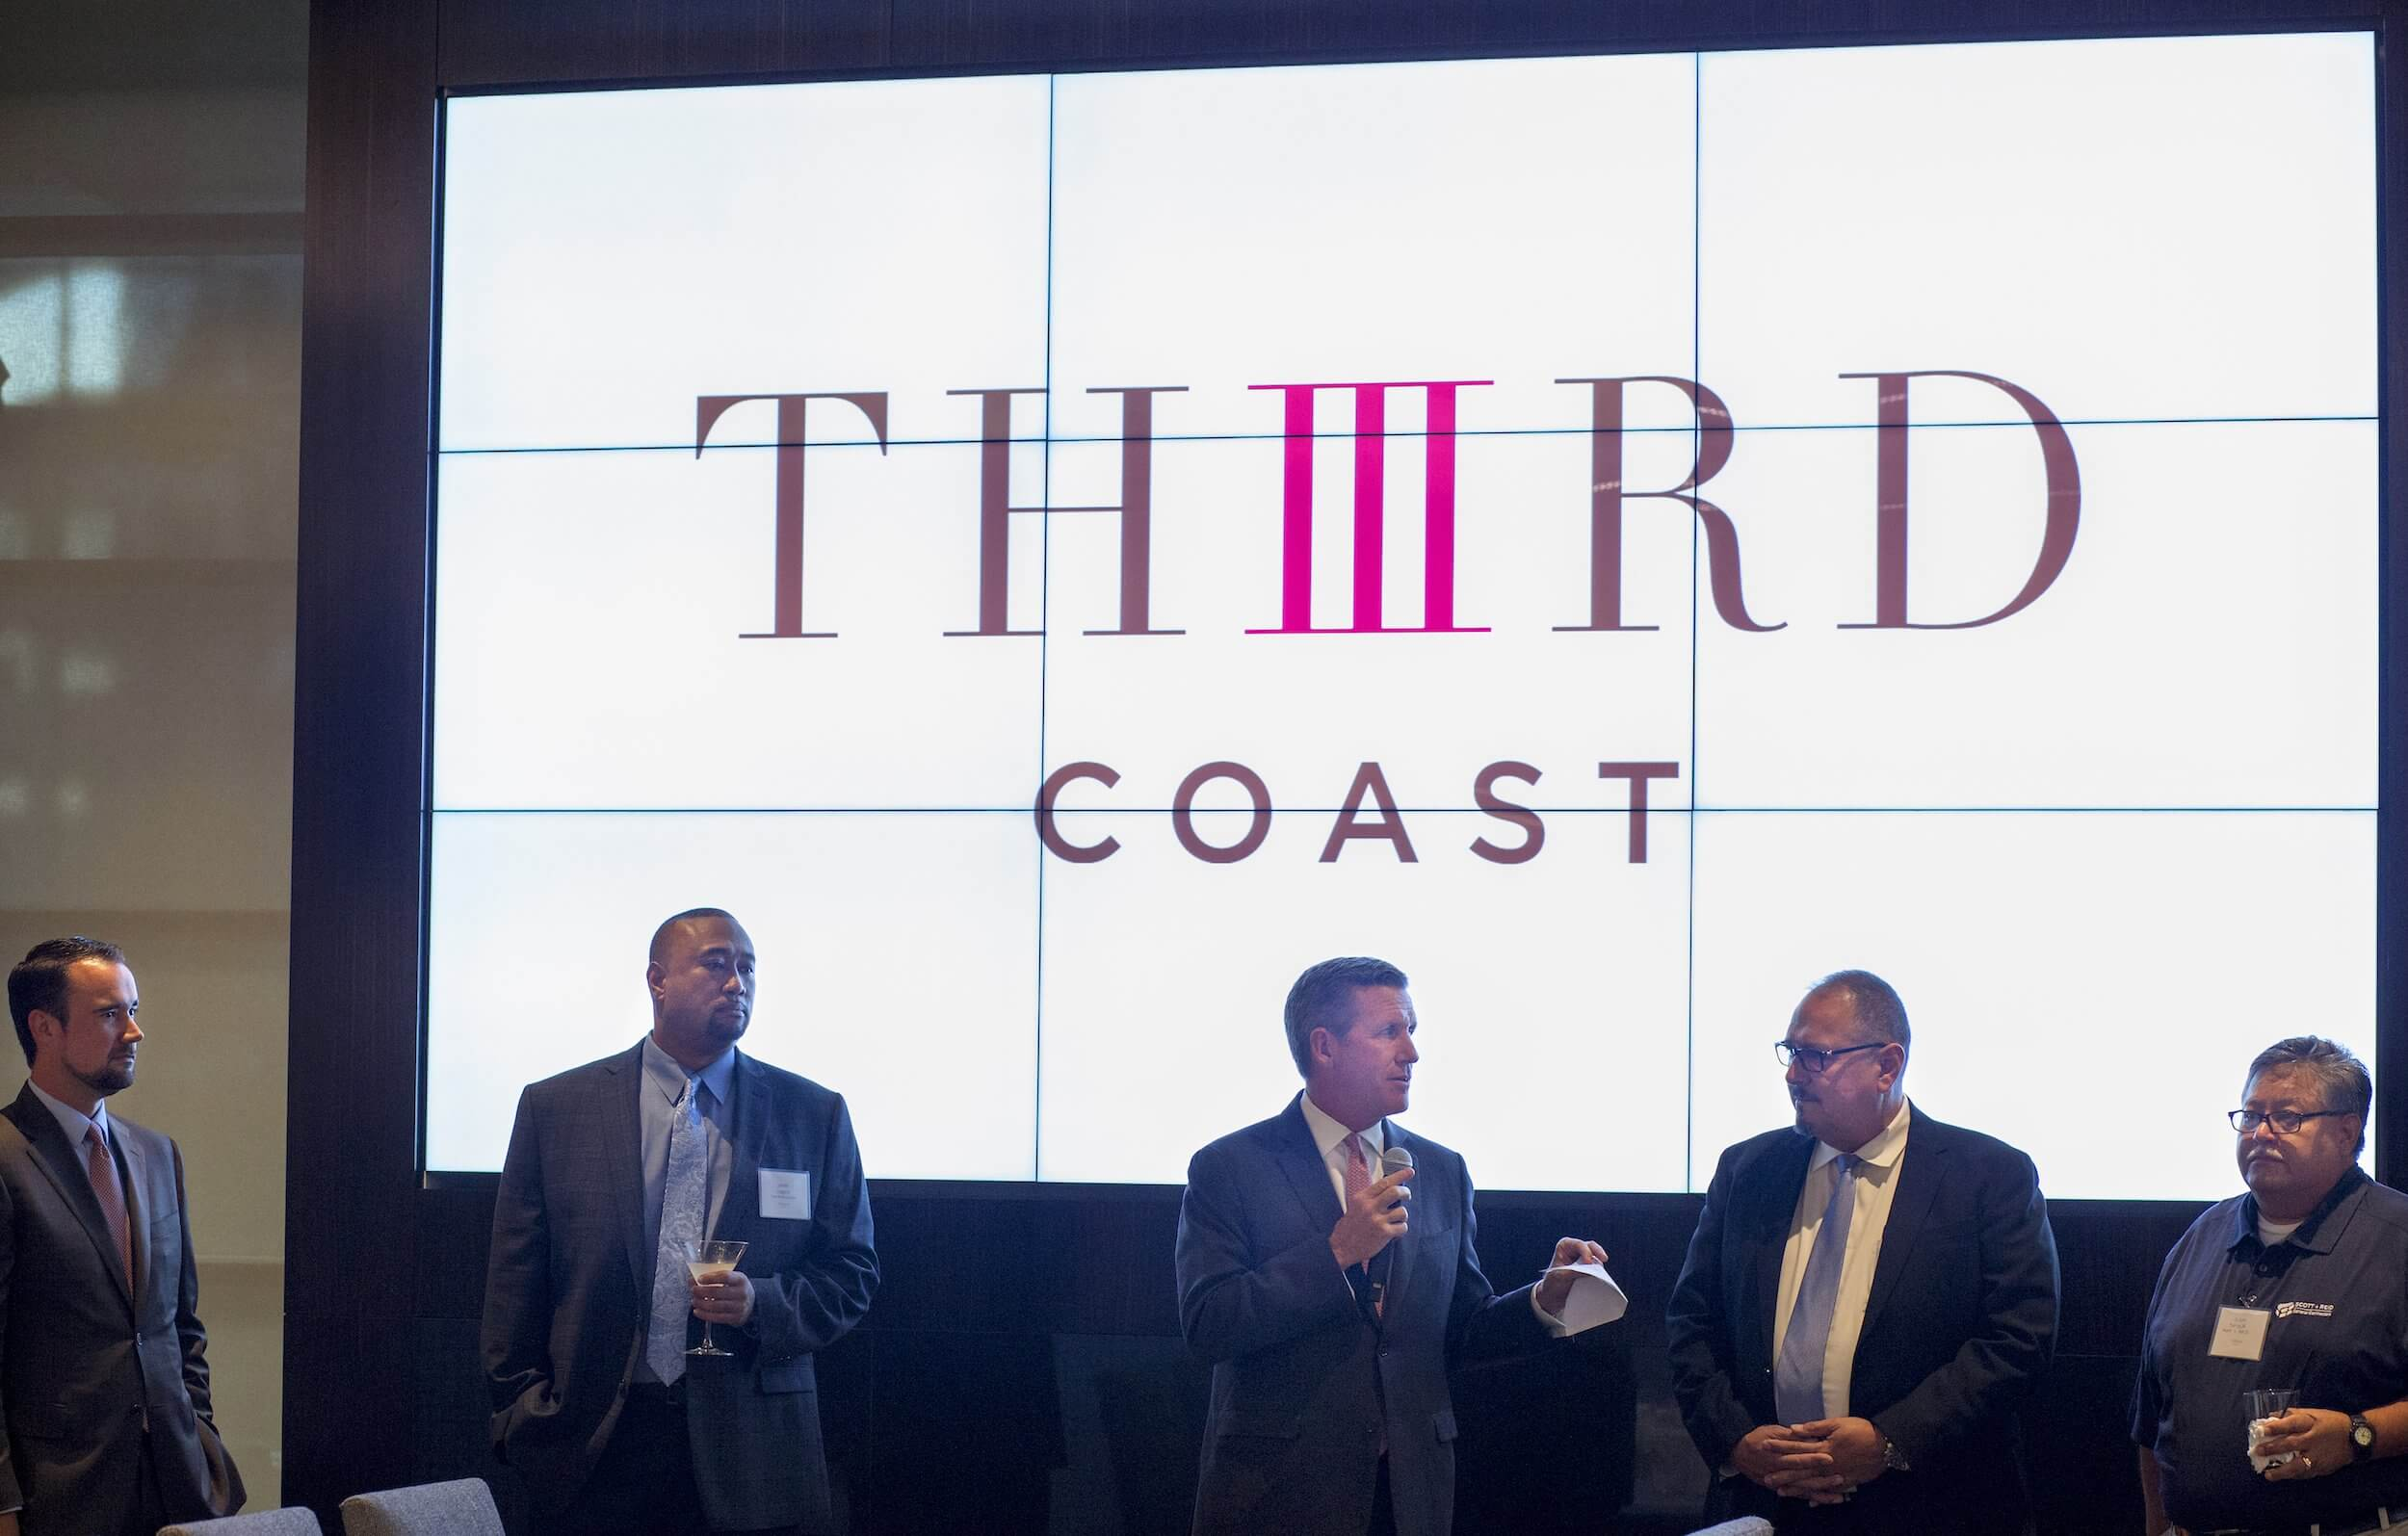 William F. McKeon, chief operational officer of the Texas Medical Center introduces the Third Coast- an upscale restaurant located in the heart of the medical center.